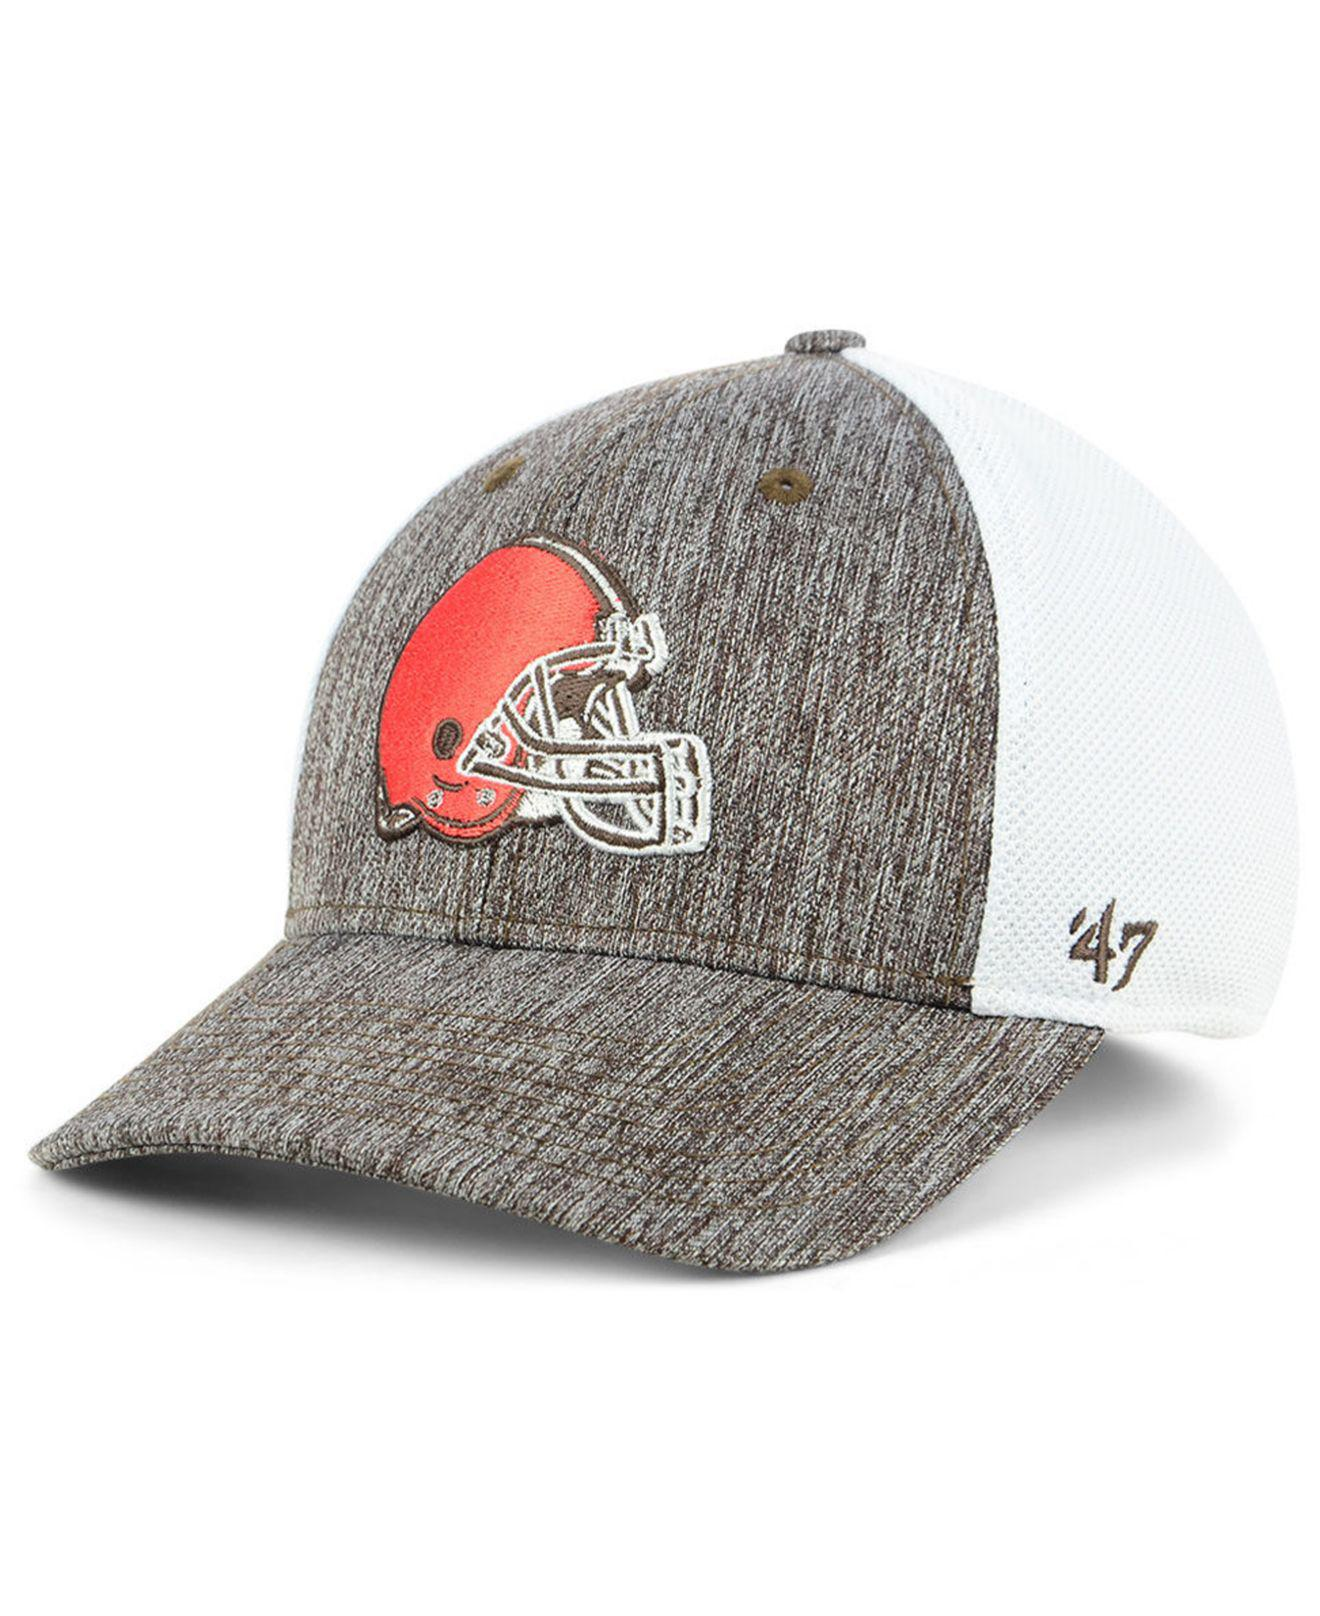 bbf7fc58bea9c Lyst - 47 Brand Cleveland Browns Hazy Flex Contender Stretch Fitted ...